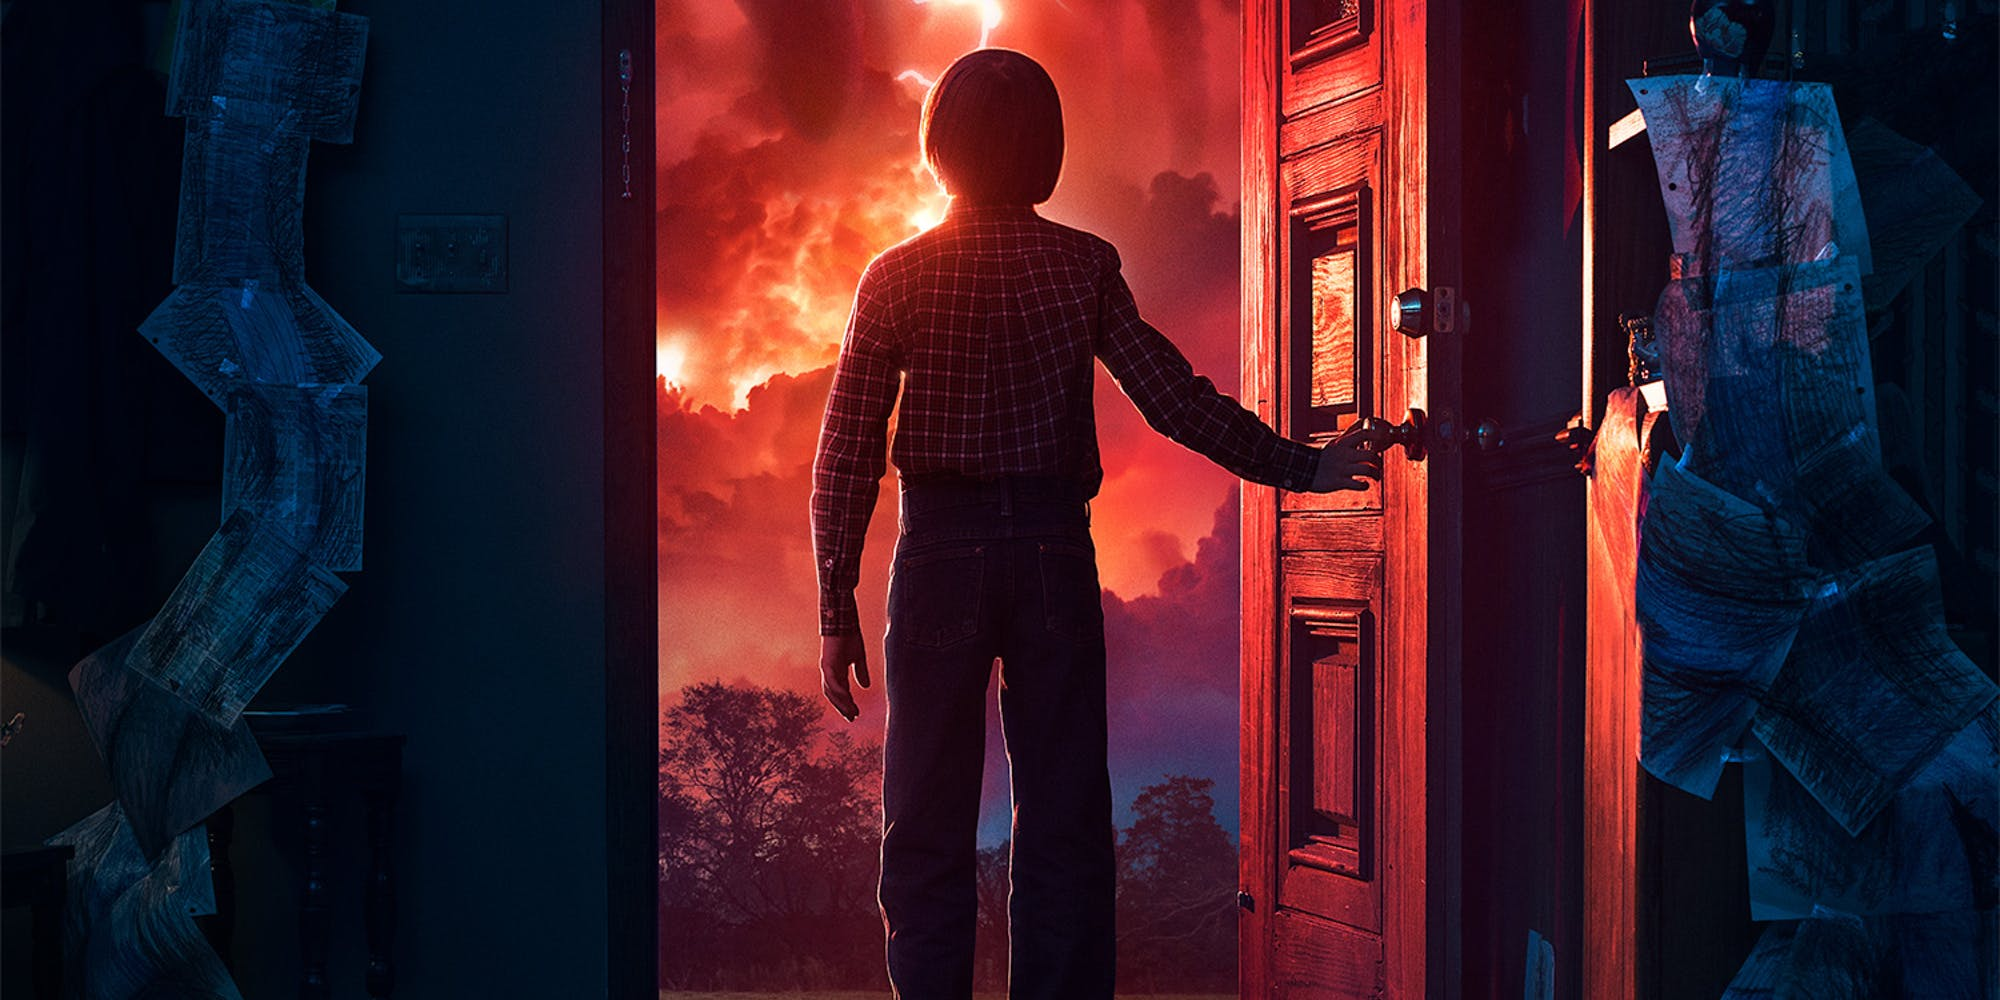 Stranger Things France La 1ere Communaute De Fans Francophones